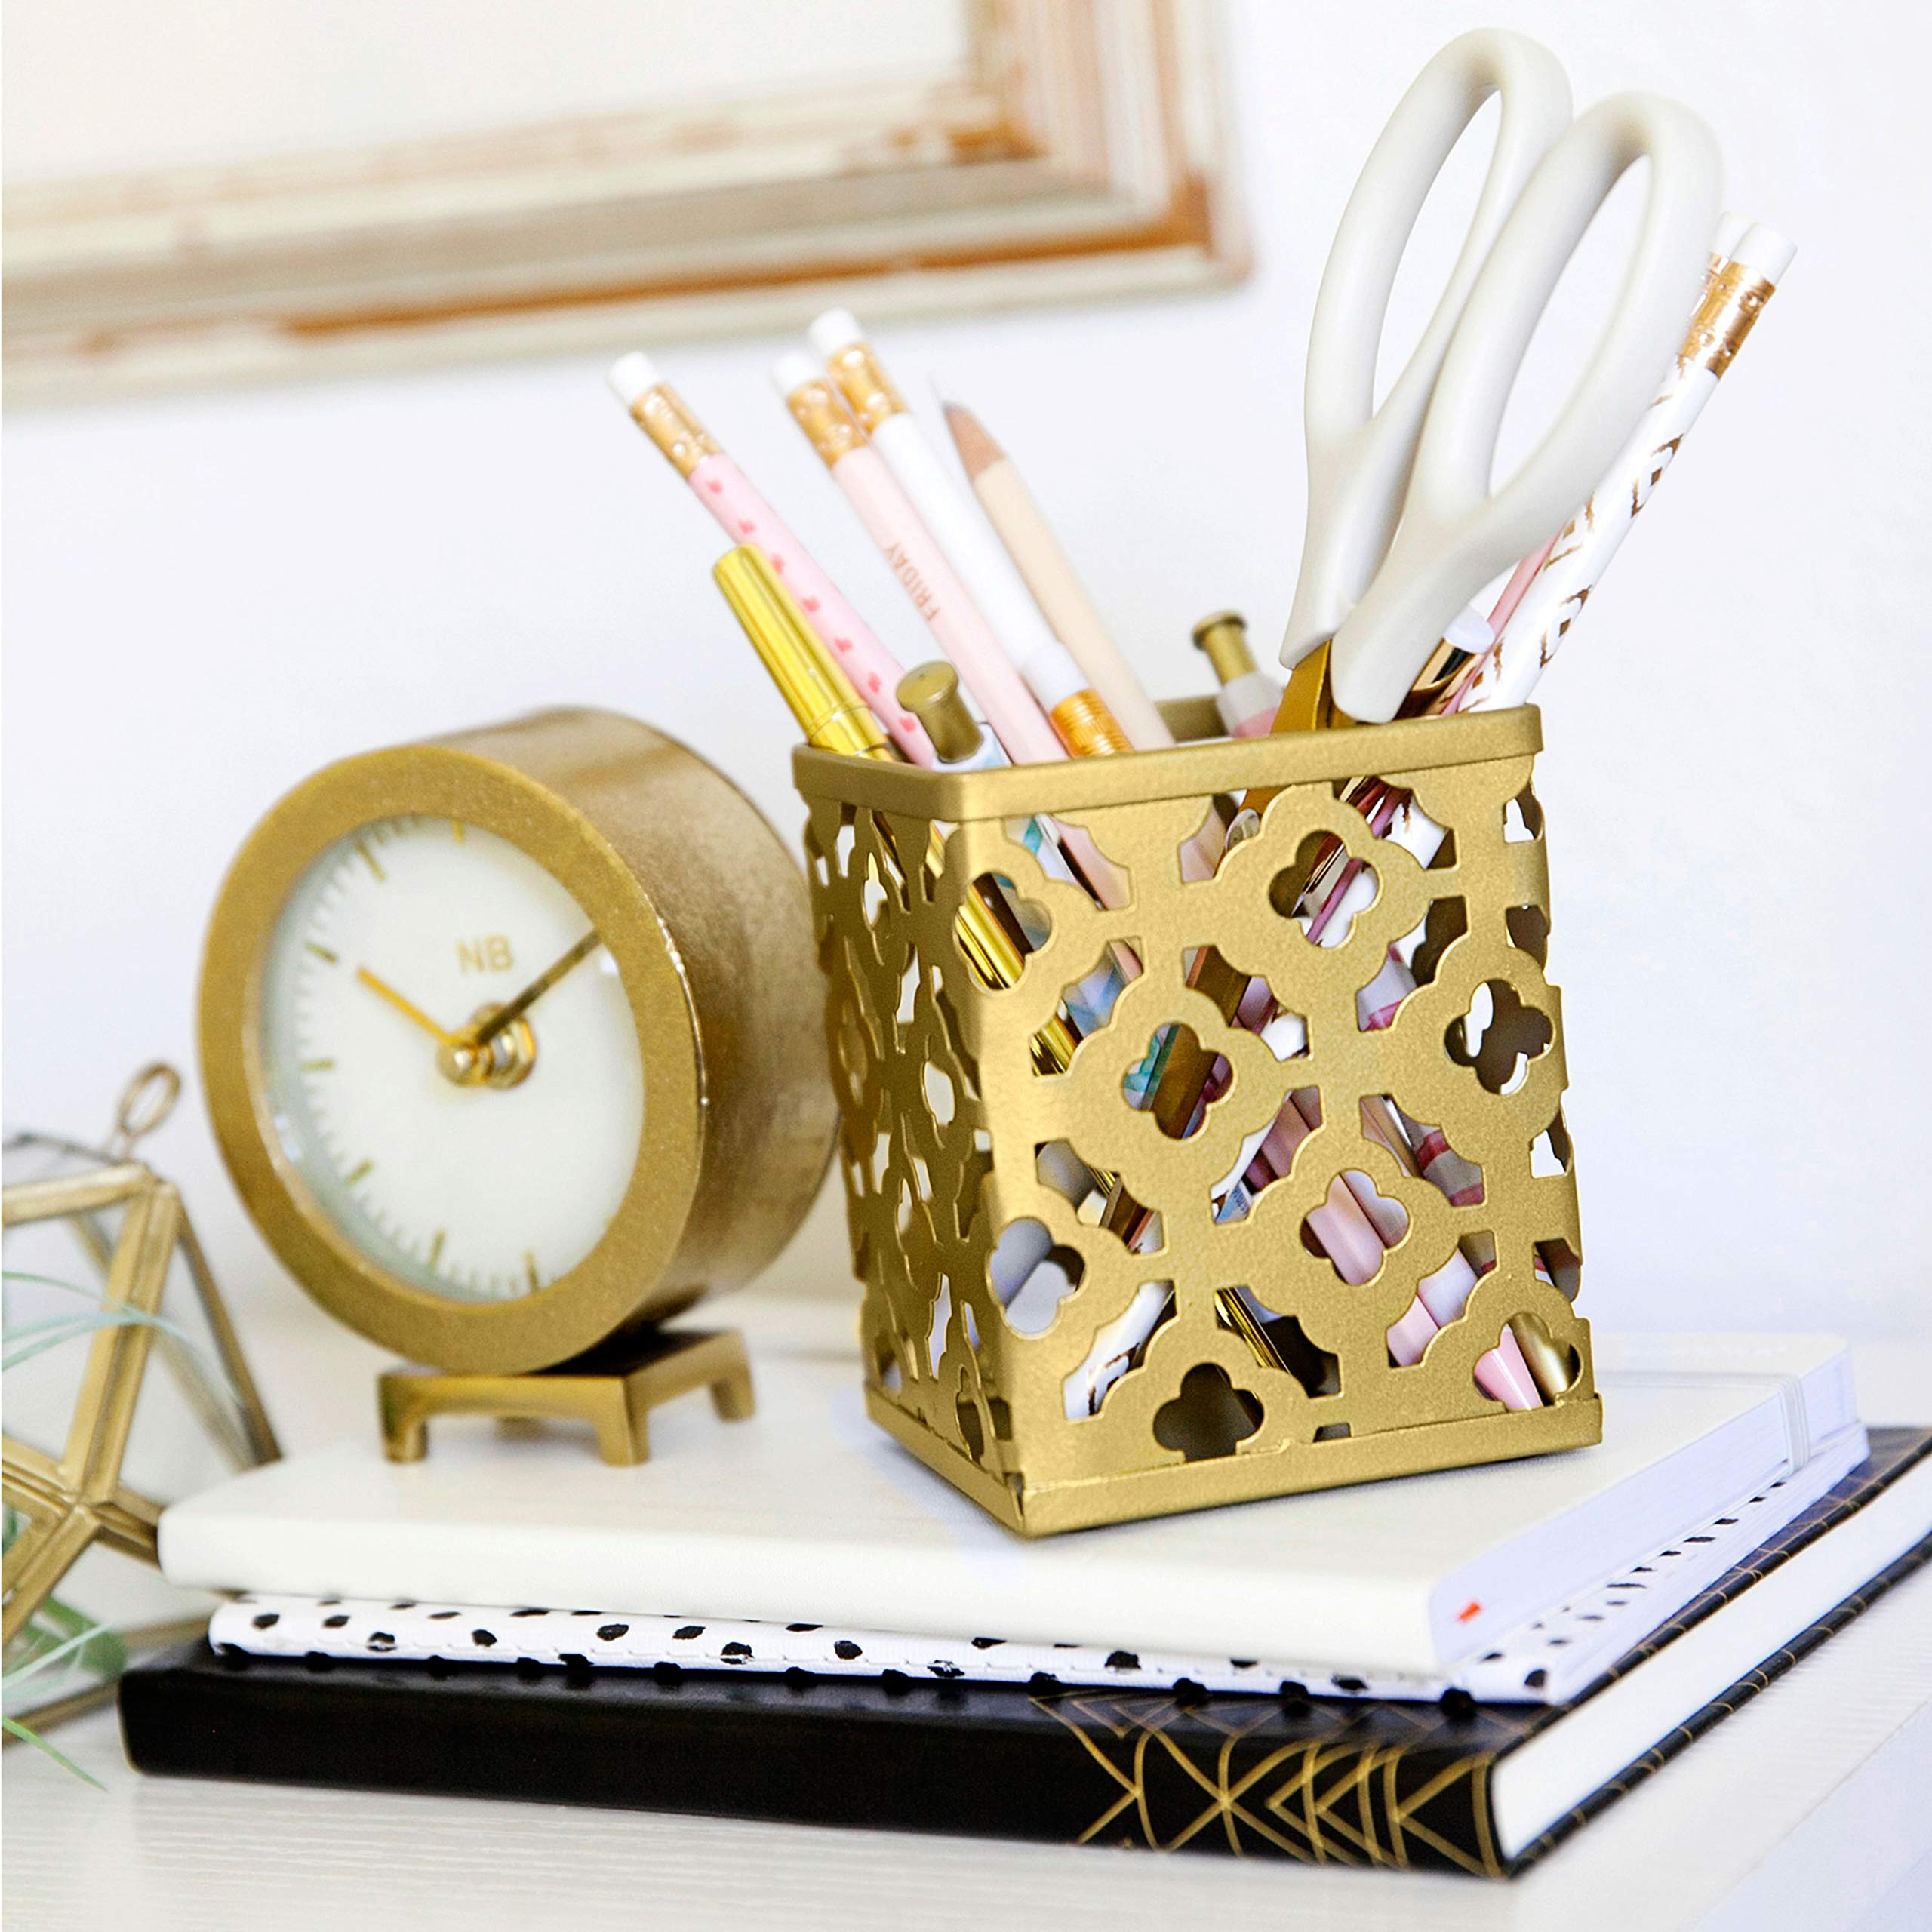 Blu Monaco Gold Desk Organizer for Women - 3 Piece Desk Accessories Set - Pen Cup, Magazine-File-Mail Holder, and Accessories Tray - Antique Gold Brass Finish Office Supplies Stationery Decor by Blu Monaco (Image #5)